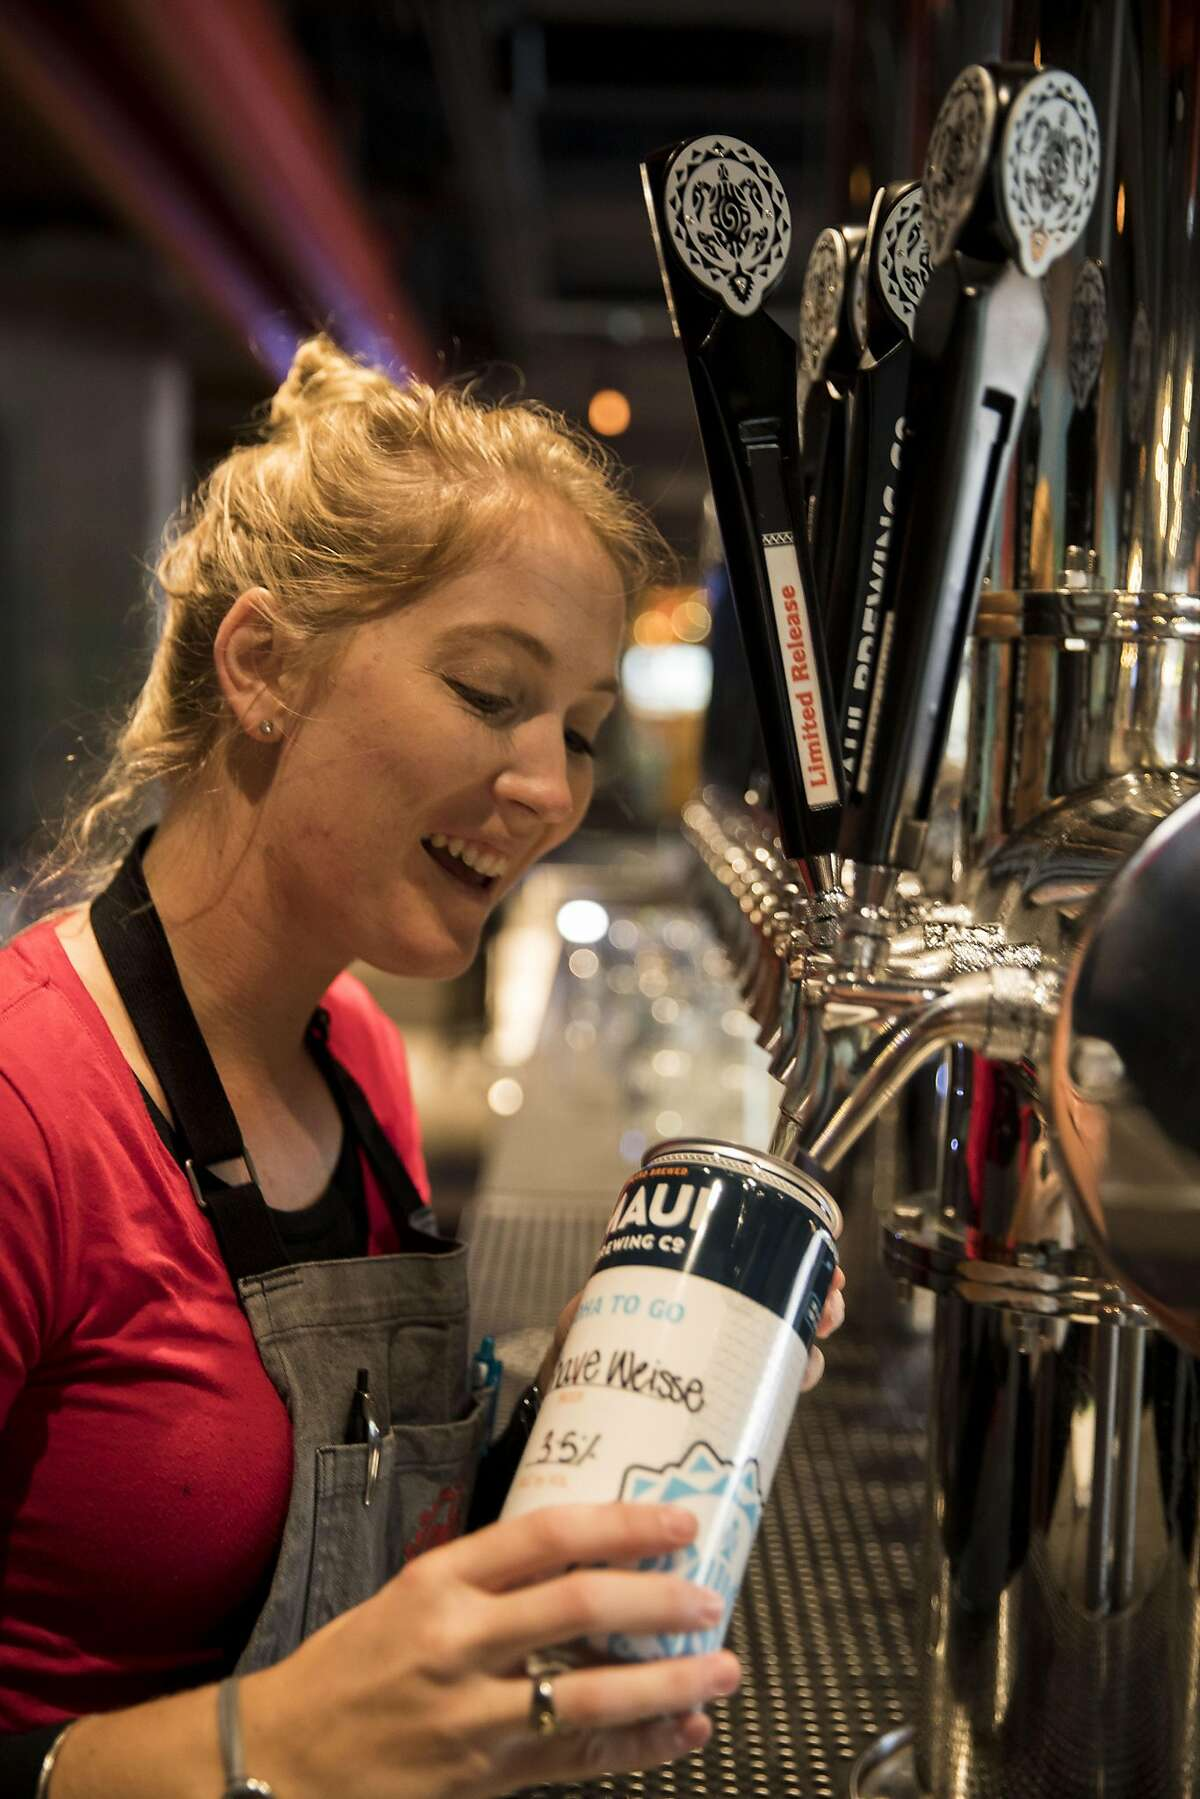 HONOLULU, HI - FEBRUARY 24: Bartender Dianne Husband fills a growler with Shave Weisse at Maui Brewing Company, located in the second floor of the Holiday Inn Resort Waikiki Beachcomber, on February 24, 2017 in Honolulu, Hawaii.